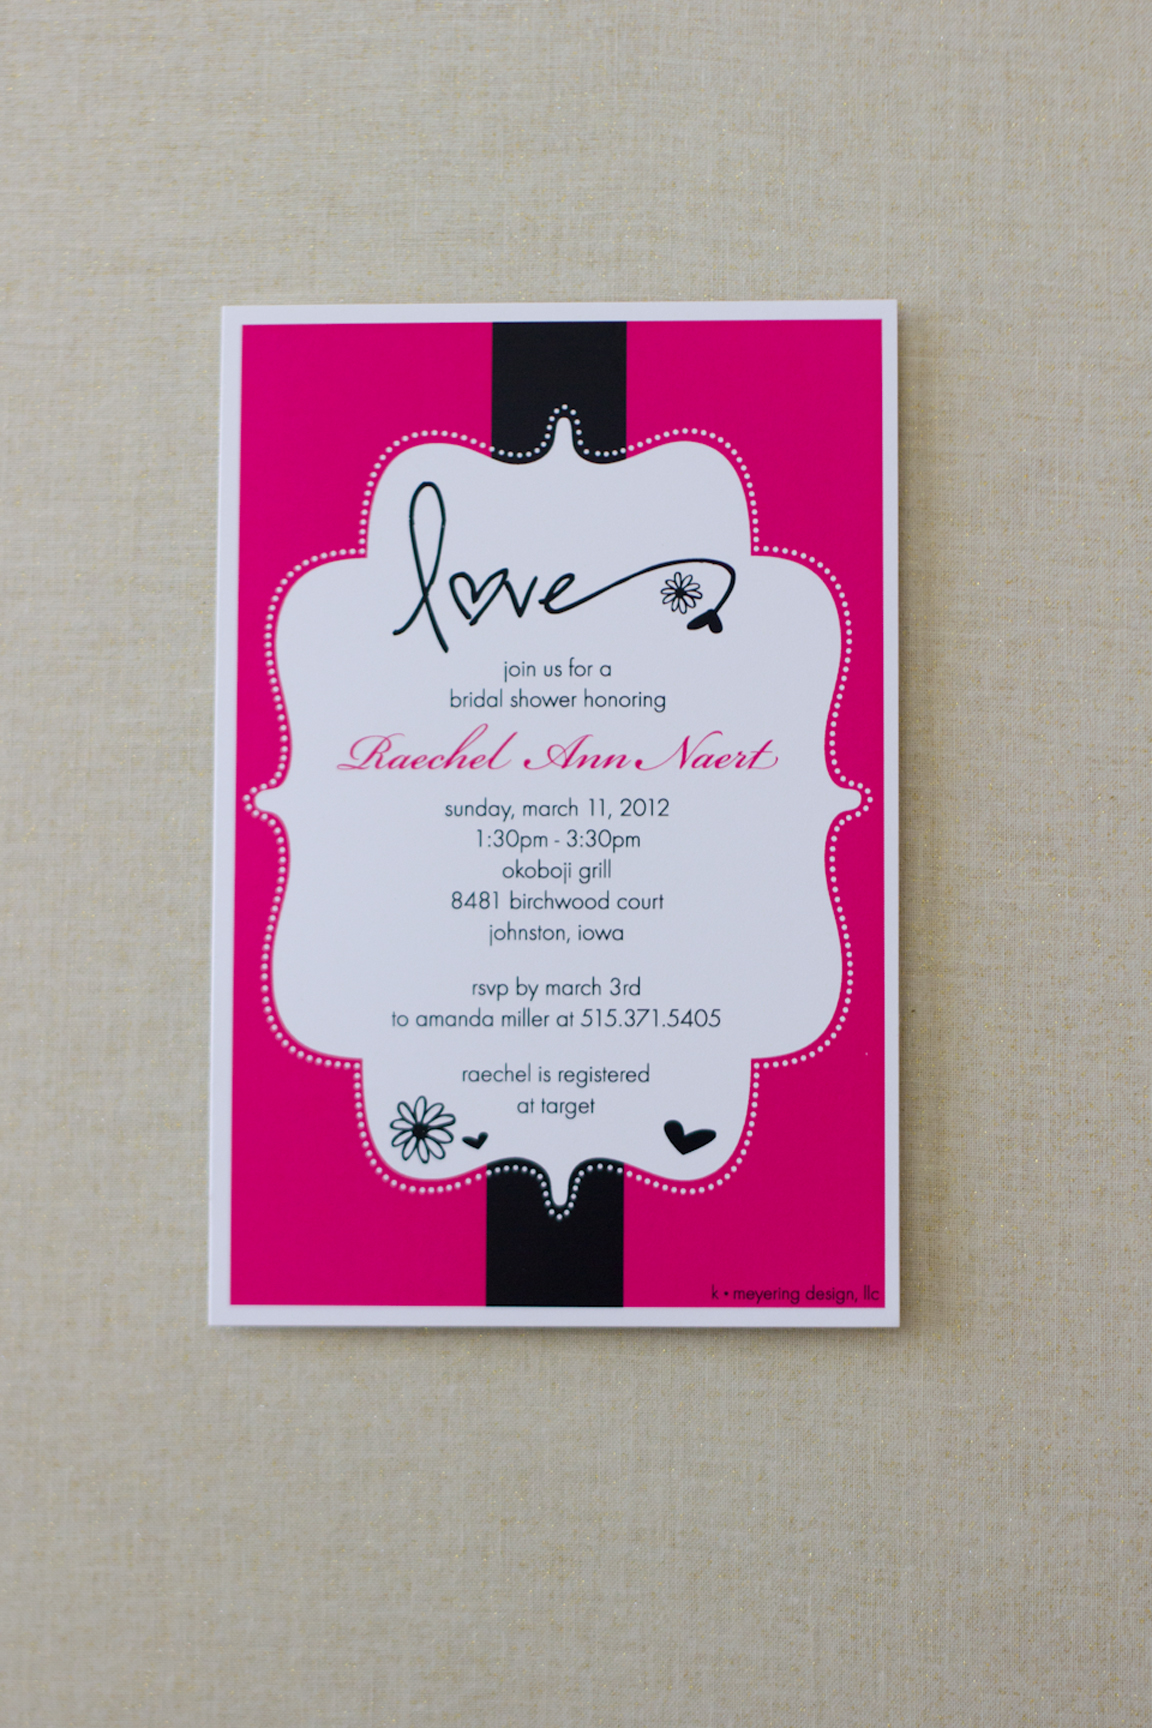 Bridal Shower Invite - Raechel